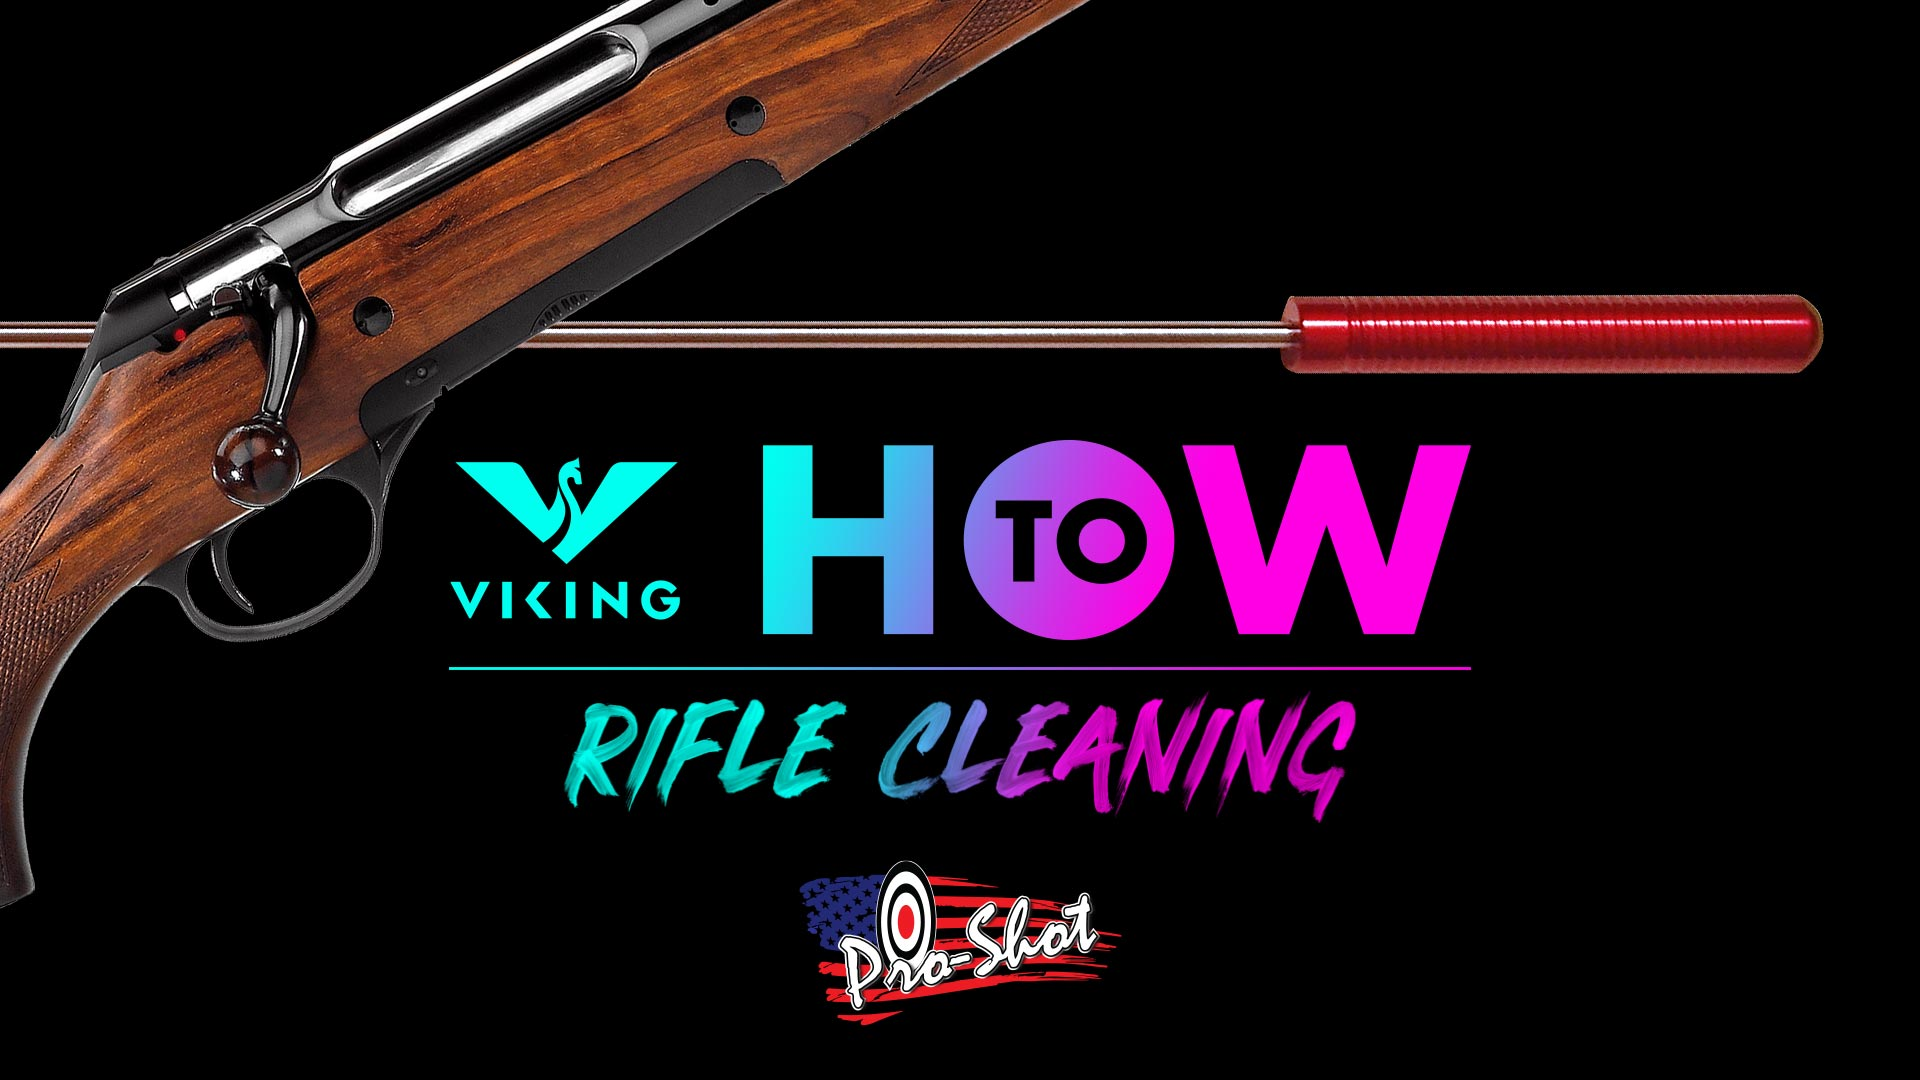 Pro-Shot Cleaning How-to